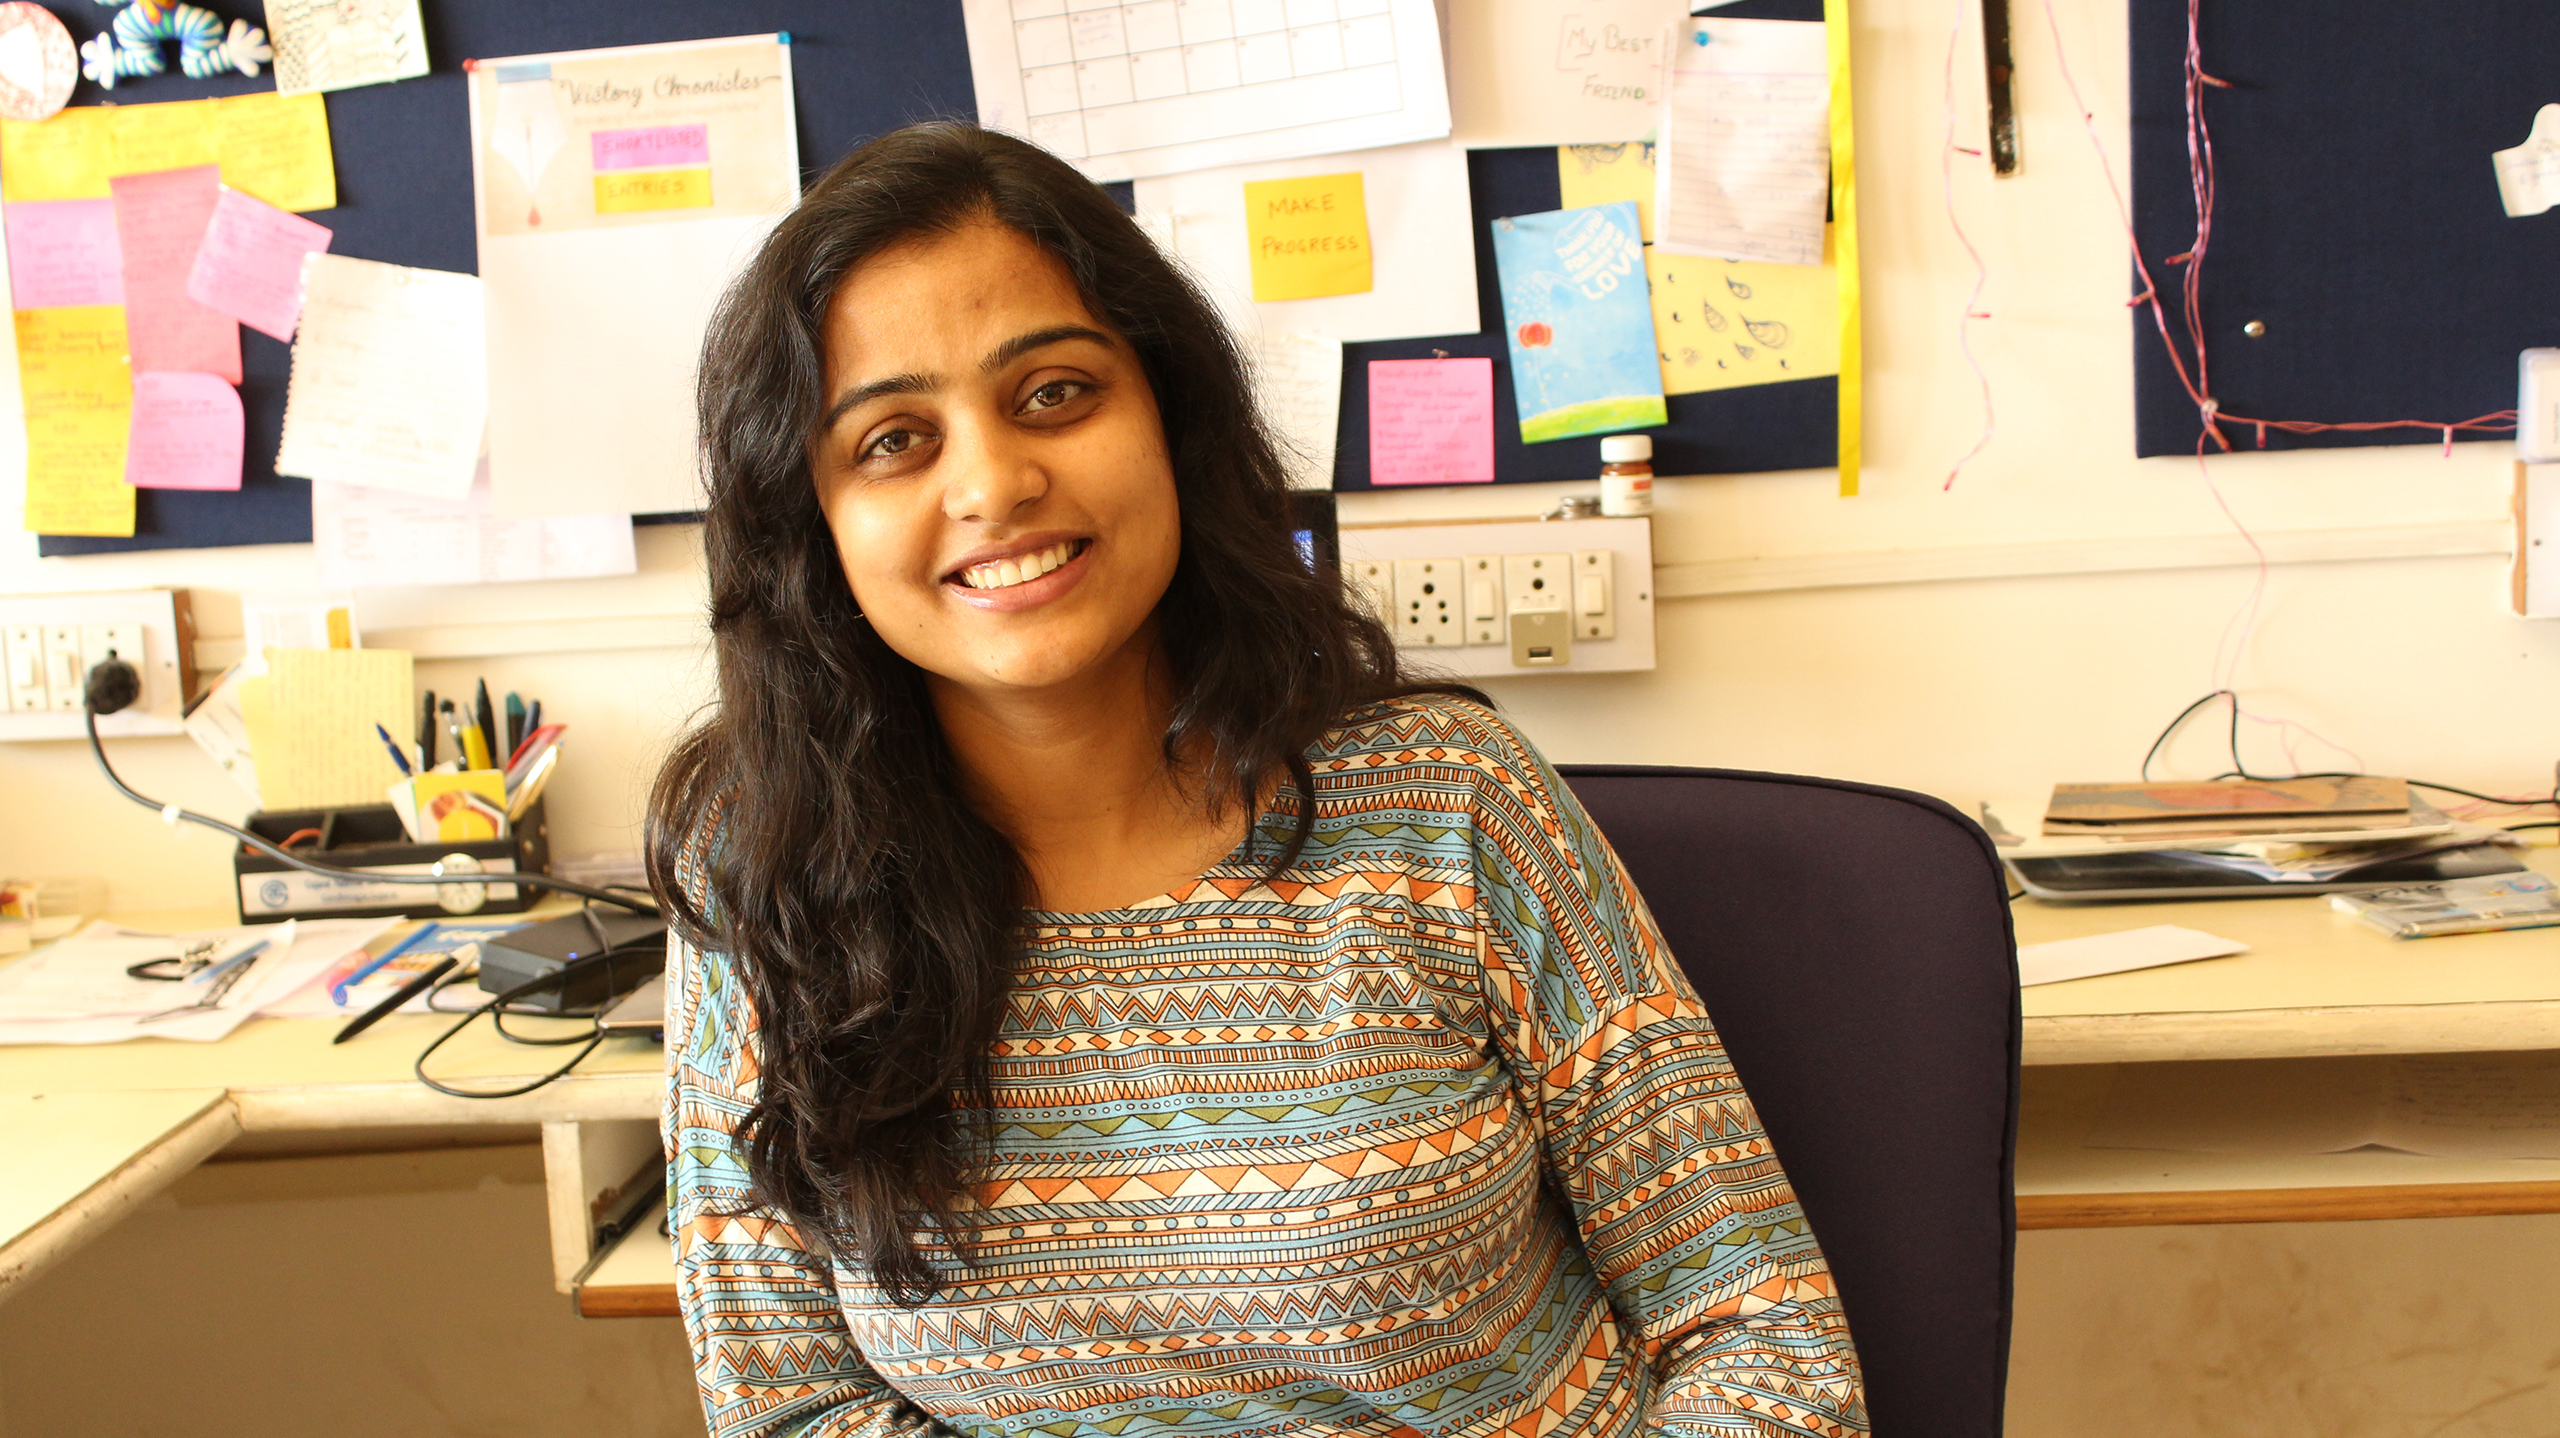 Aditi Gupta, founder of Menstrupedia, poses for a portrait.  The organization's offices are based in Gujarat, India